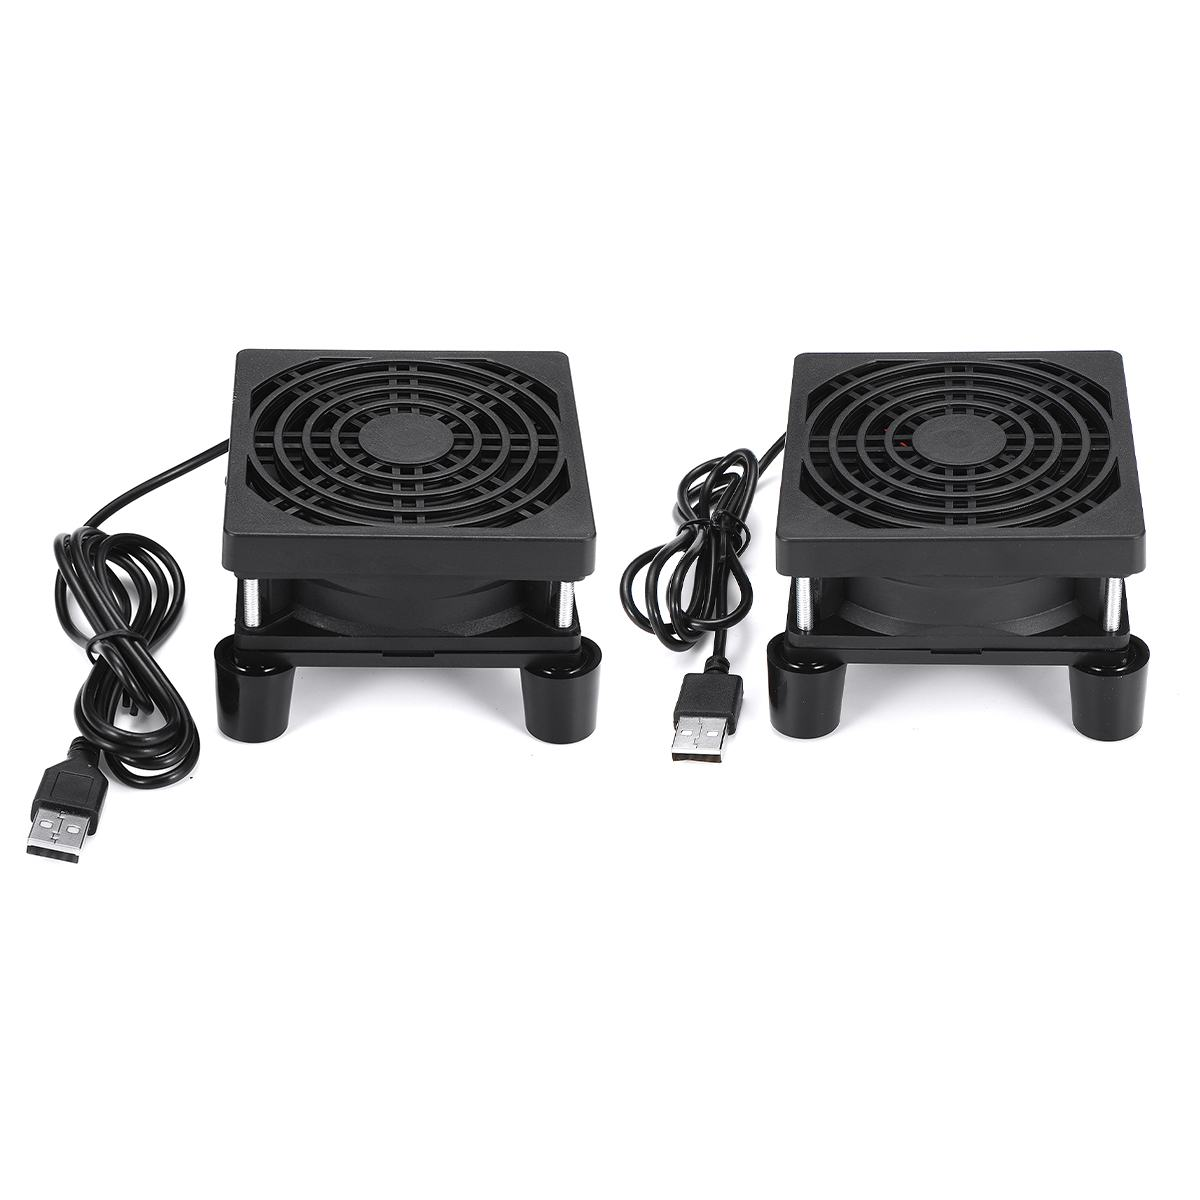 DIY 8cm Router Cooling Fan Rack For TV Box Speed Controller PC Cooler Wireless Cooling Fan Quiet 5V USB Fan With Protective Net